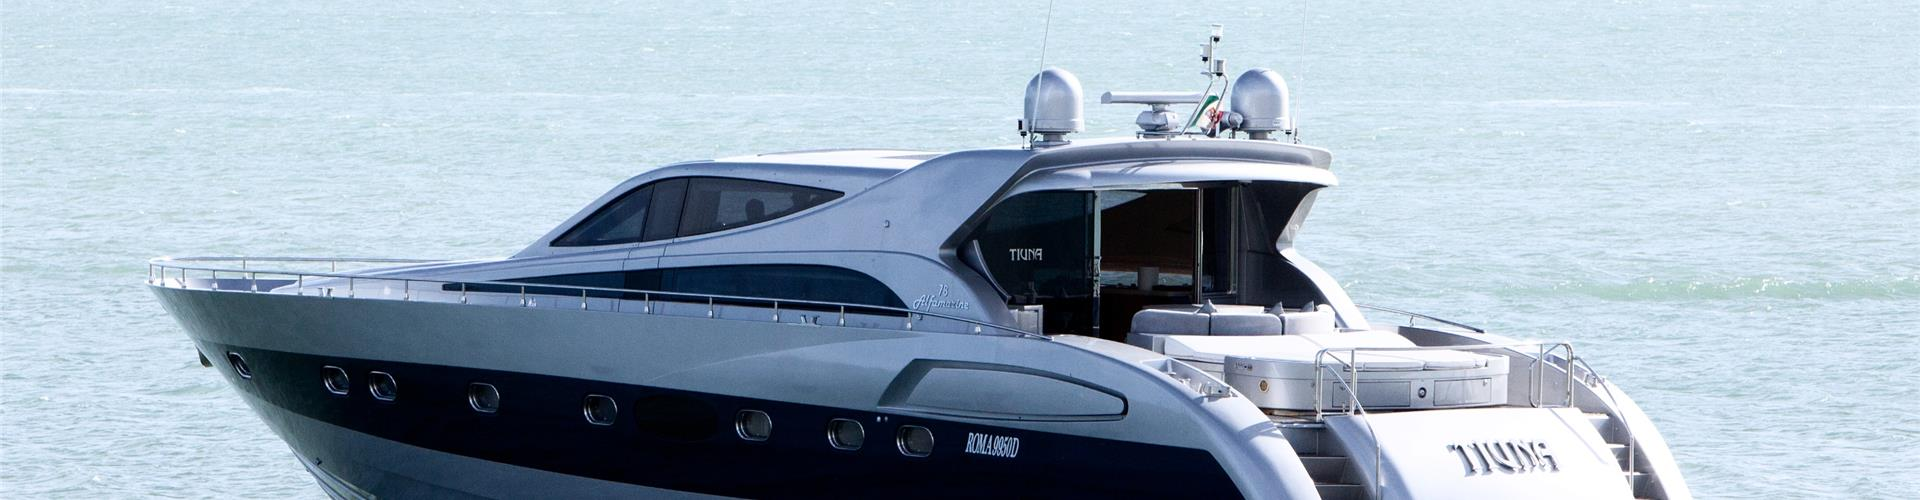 Photo of Luxury Yacht Alfamarine 72 Alea